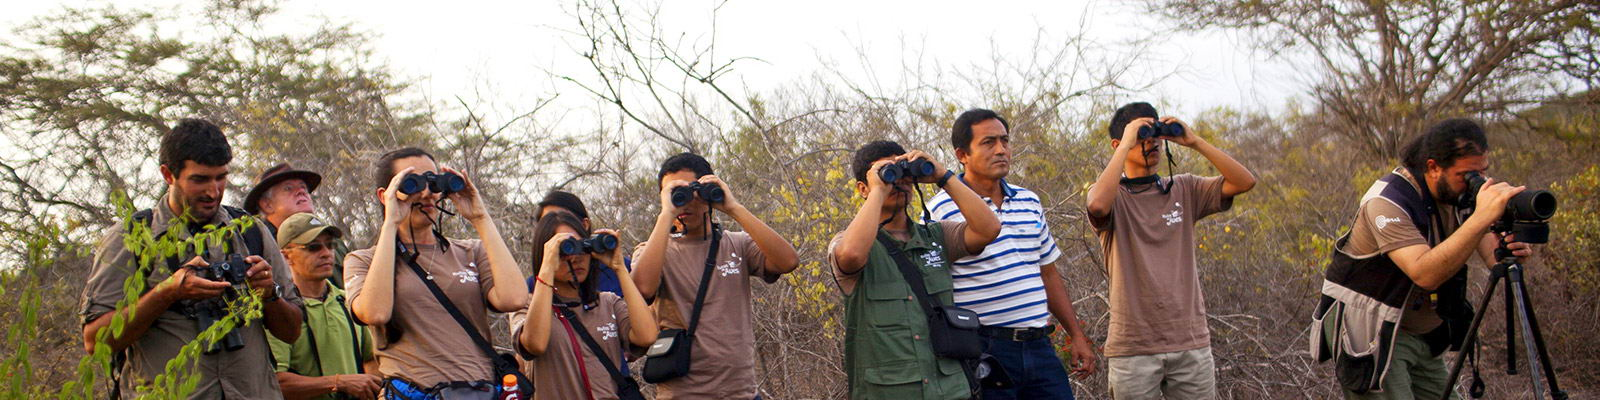 Chichiriches birding team Tambopata